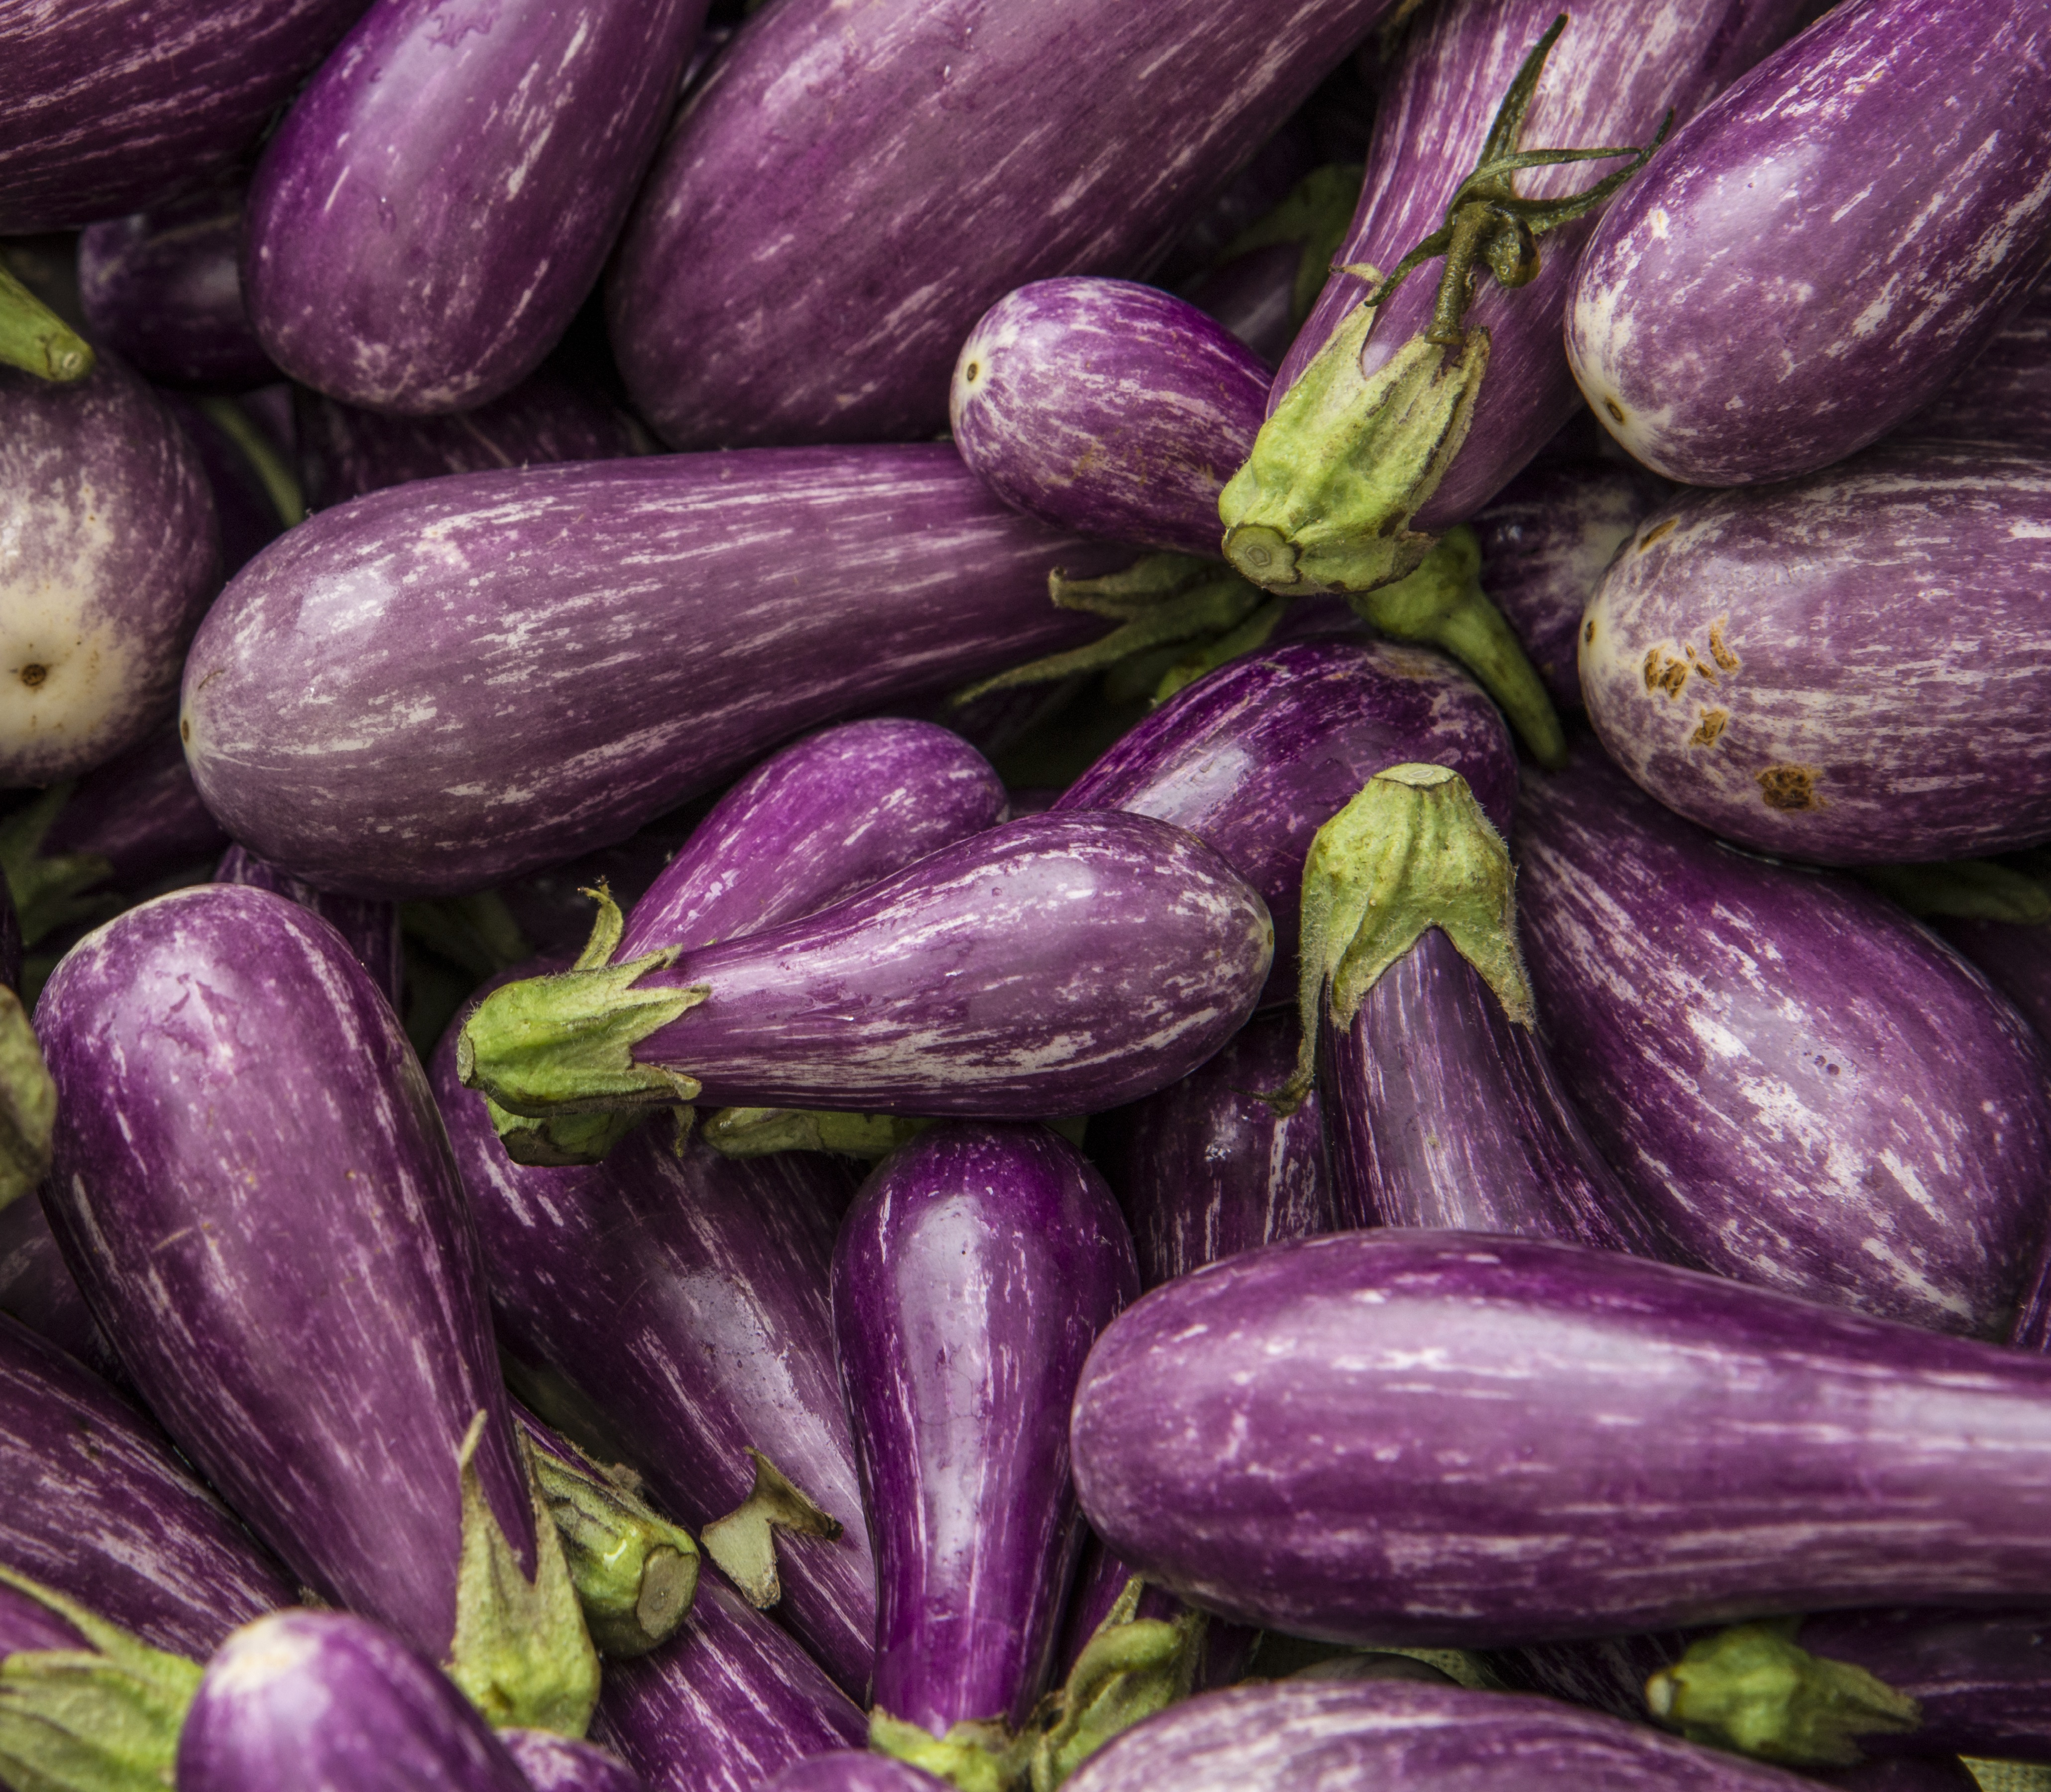 Eggplant 4k Ultra HD Wallpaper And Background Image